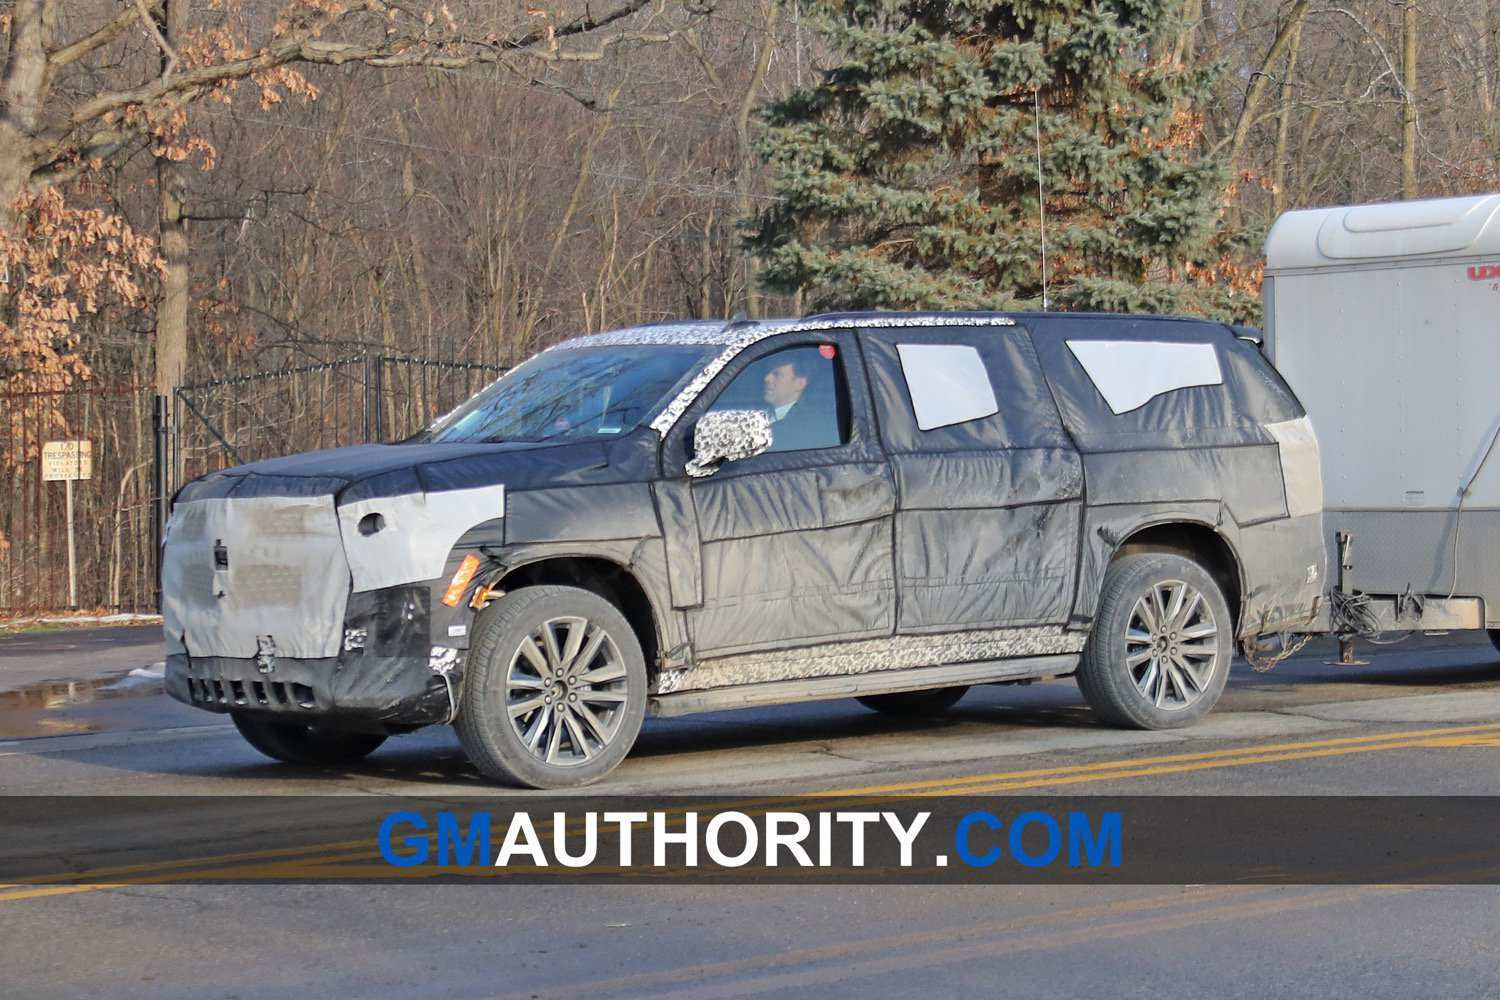 70 New 2020 Cadillac Escalade Spy Photos Rumors